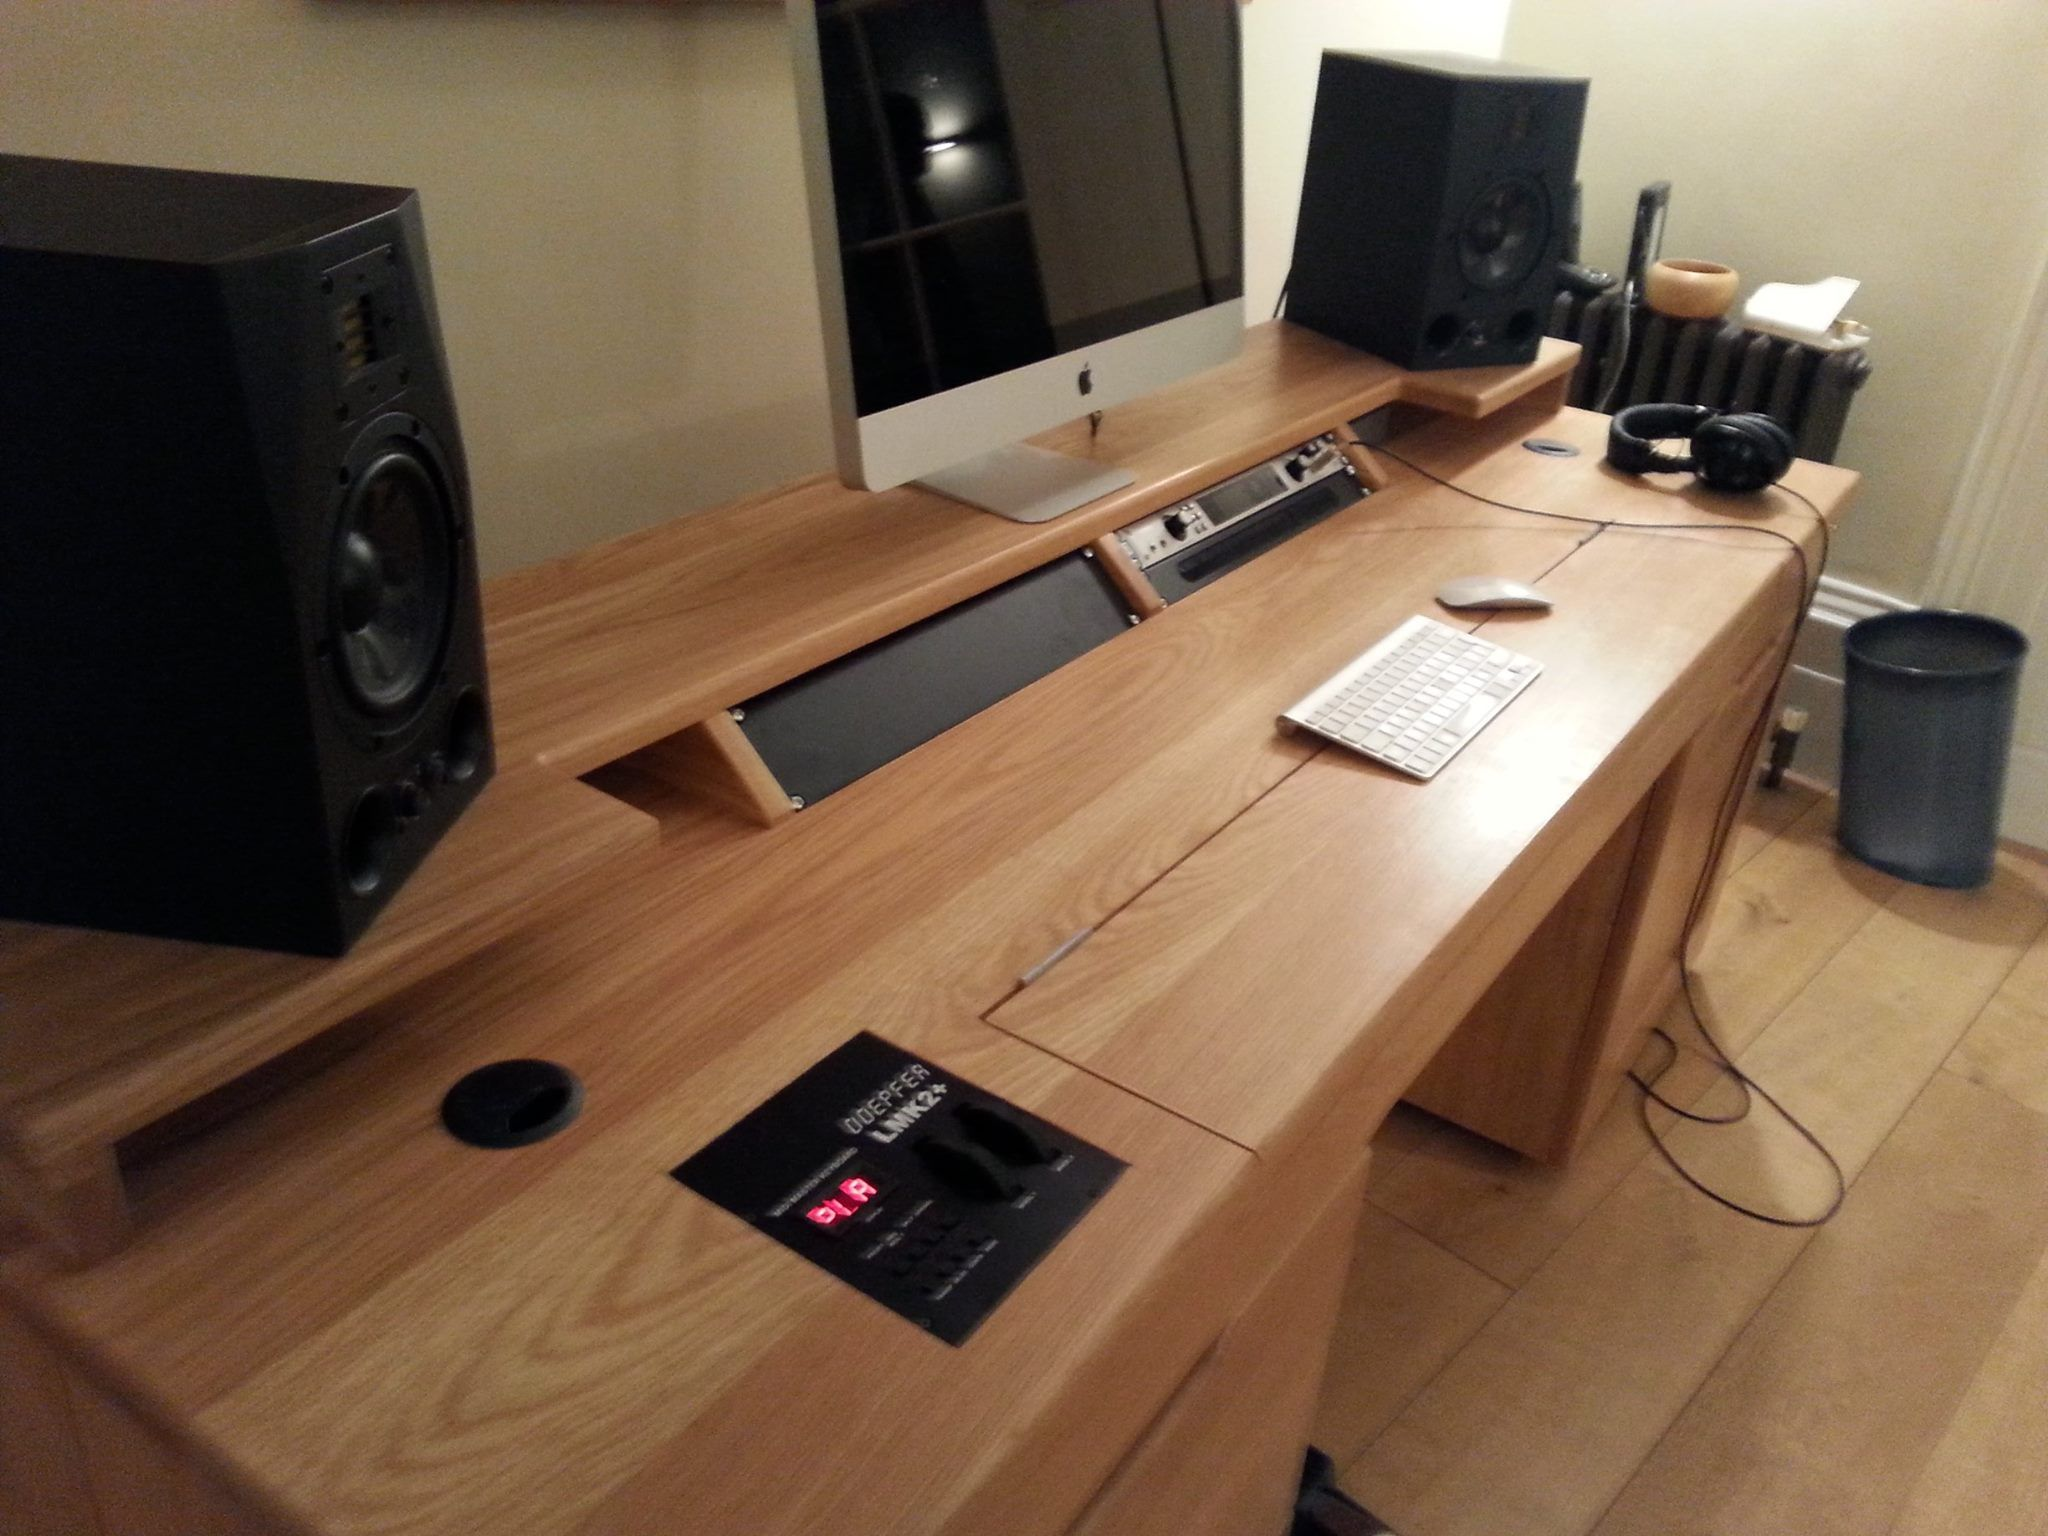 Custom Built Recording Studio Desk Built To House Doepfer Lmk2 Real Wood Ash Veneer Finish